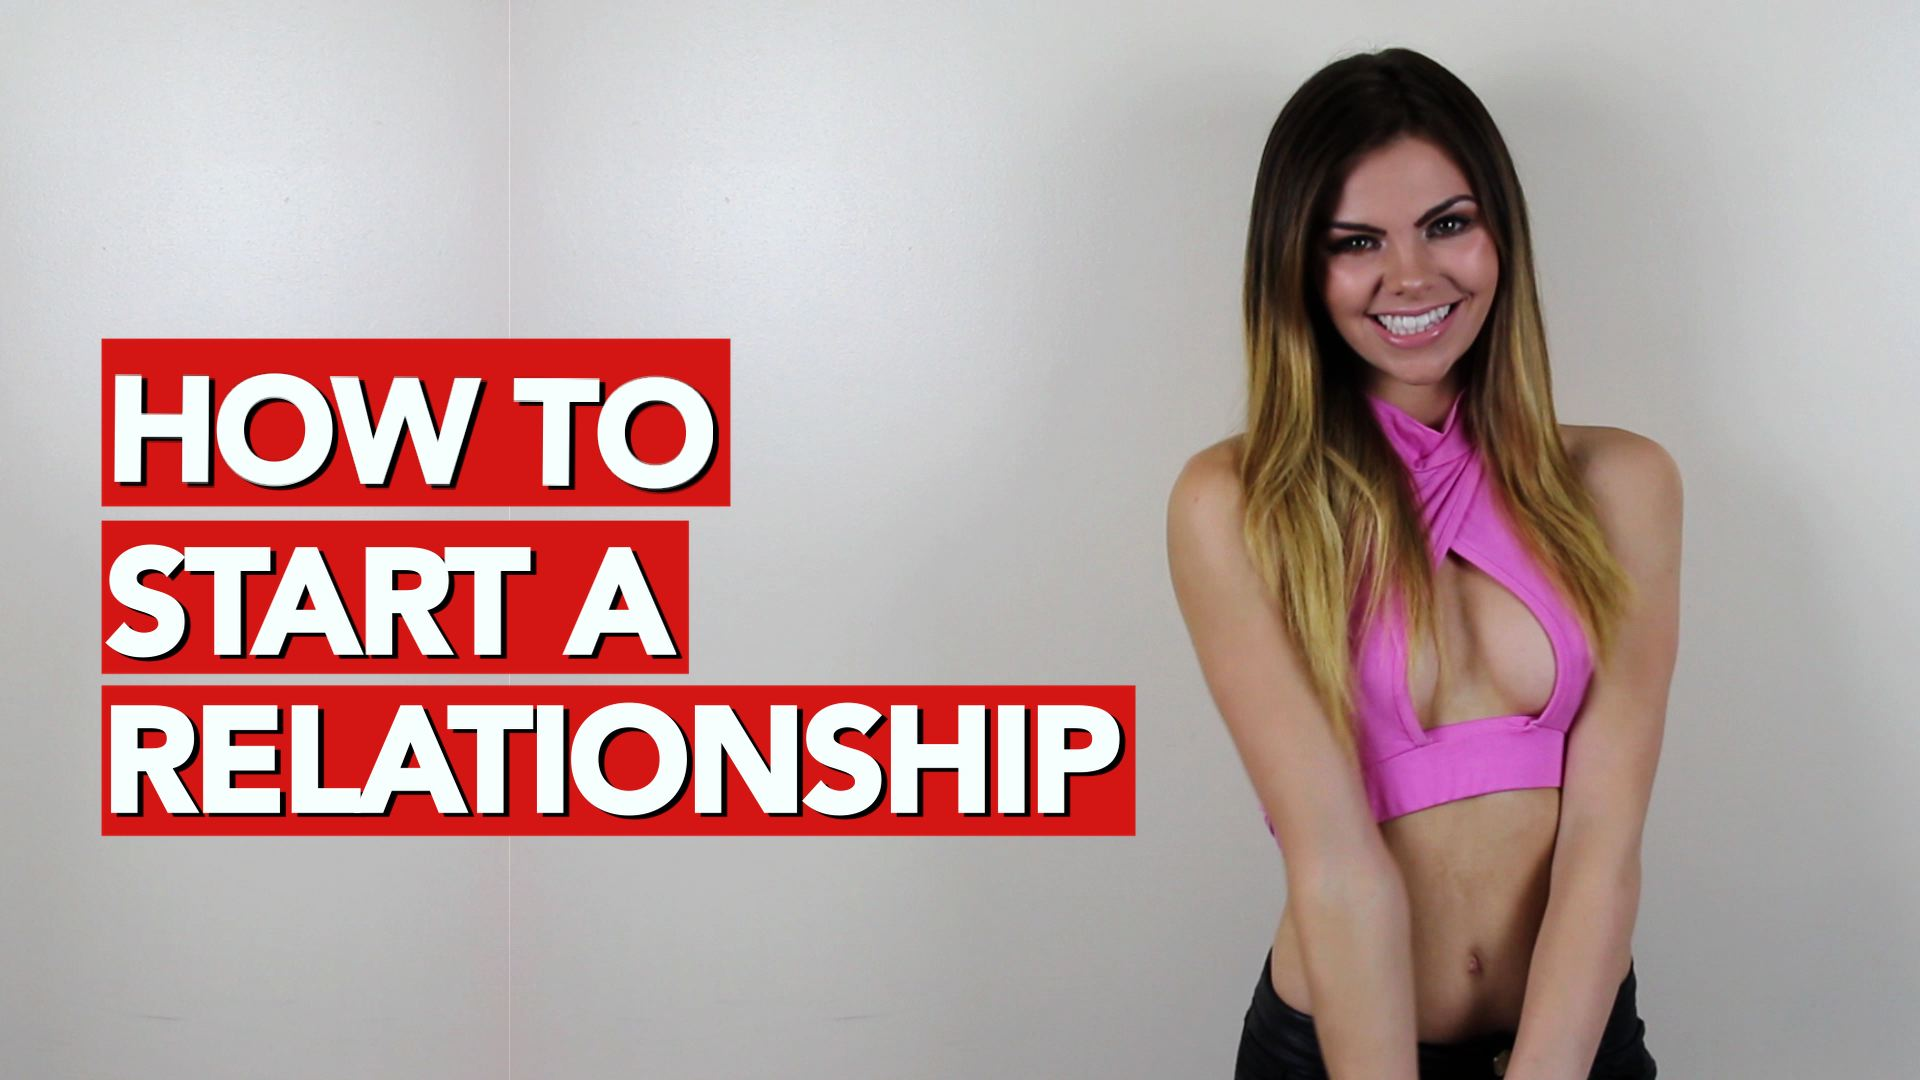 How to Start a Relationship